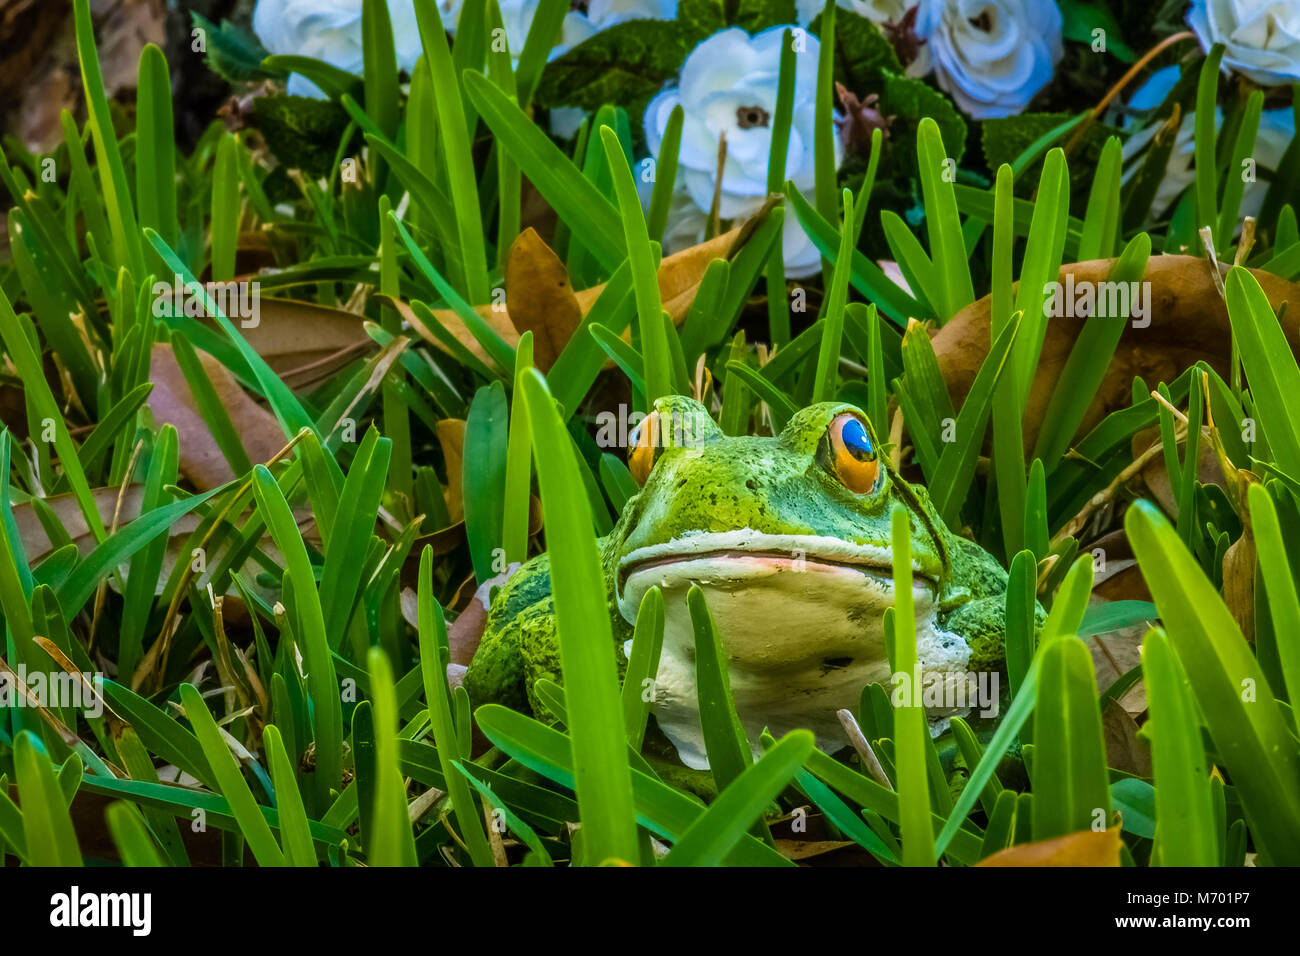 A frog hides in the grass in front of white flowers. Stock Photo